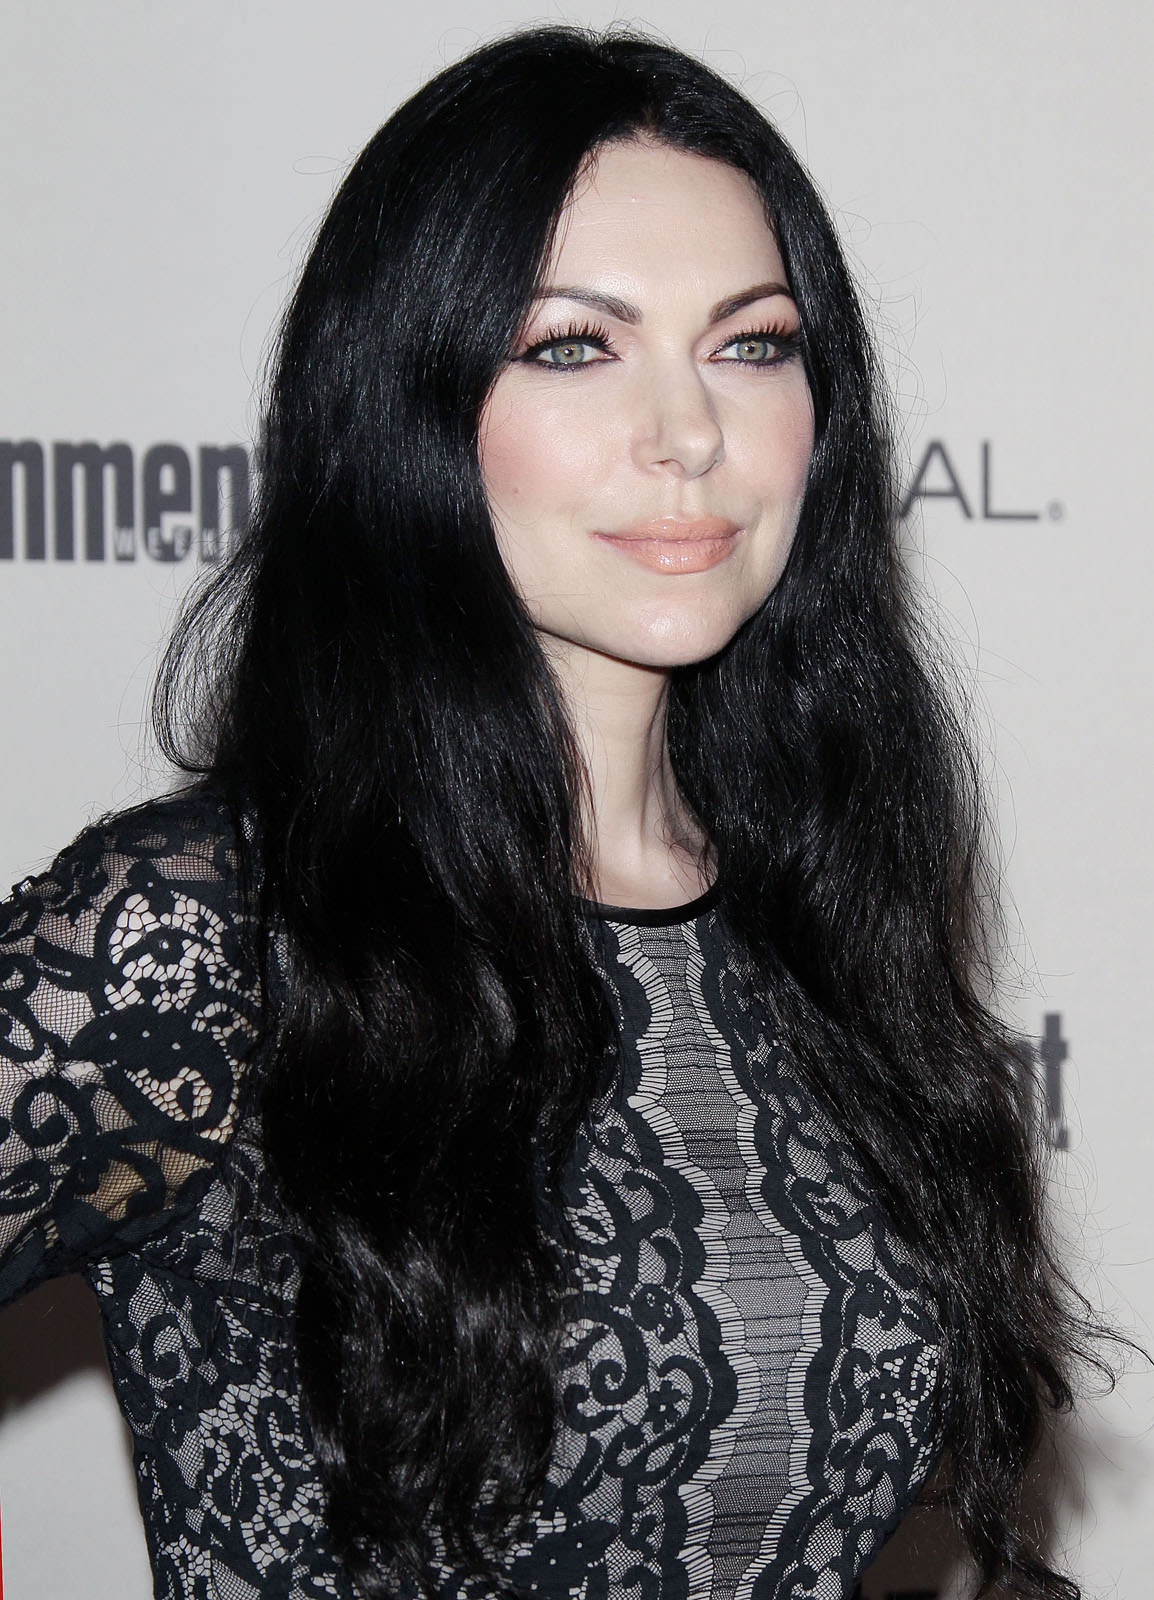 Laura Prepon Photo Gallery